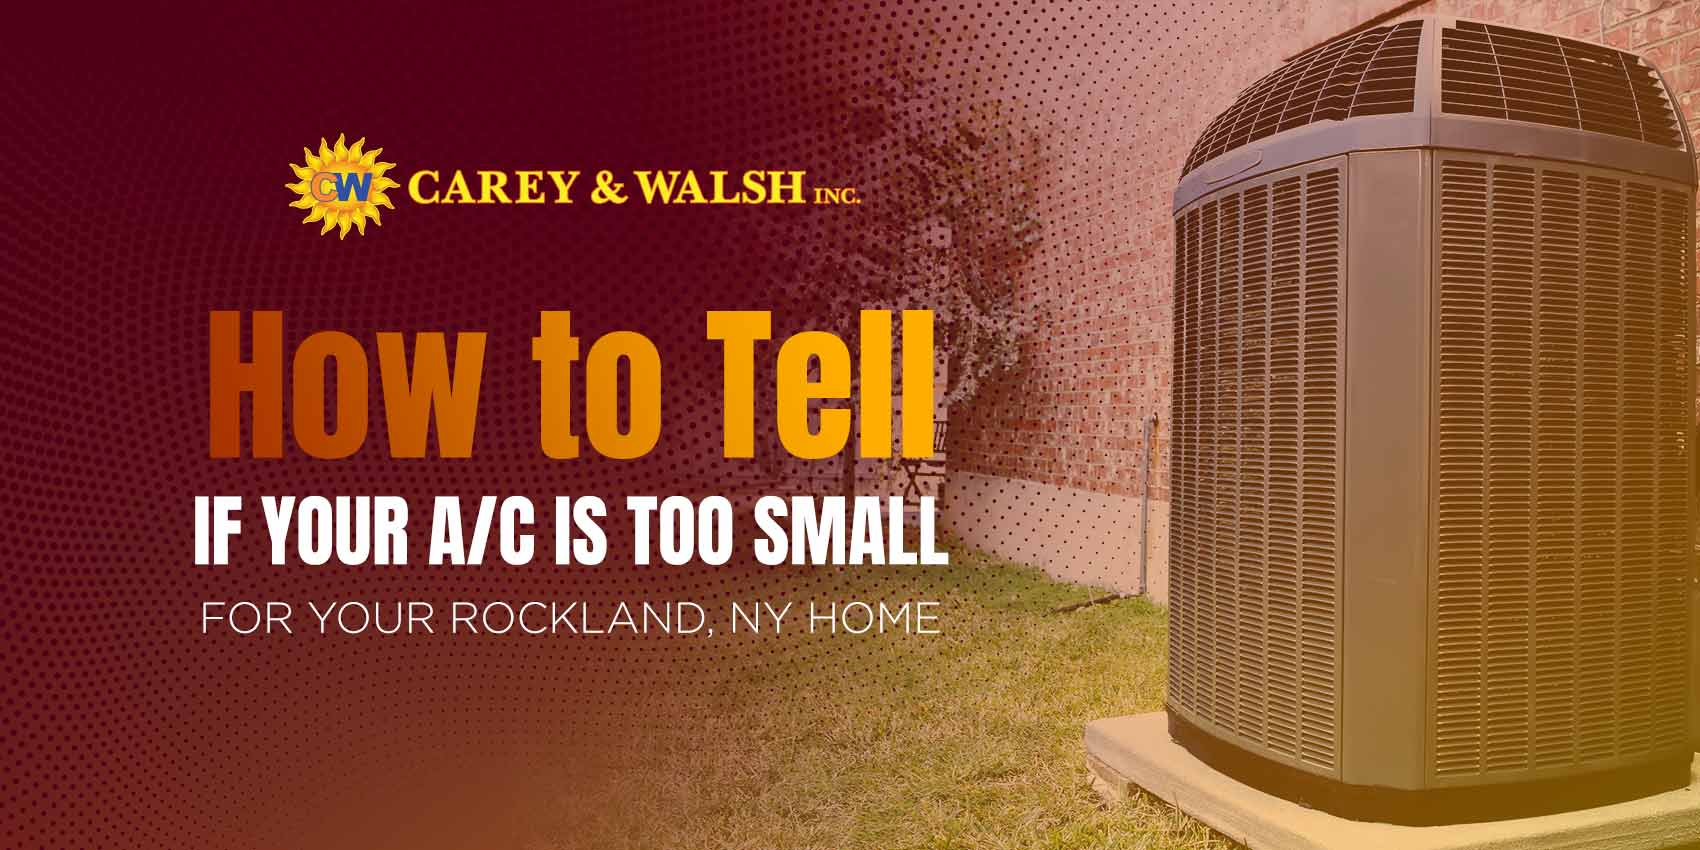 How to Tell If Your A/C is Too Small for Your Rockland, NY Home